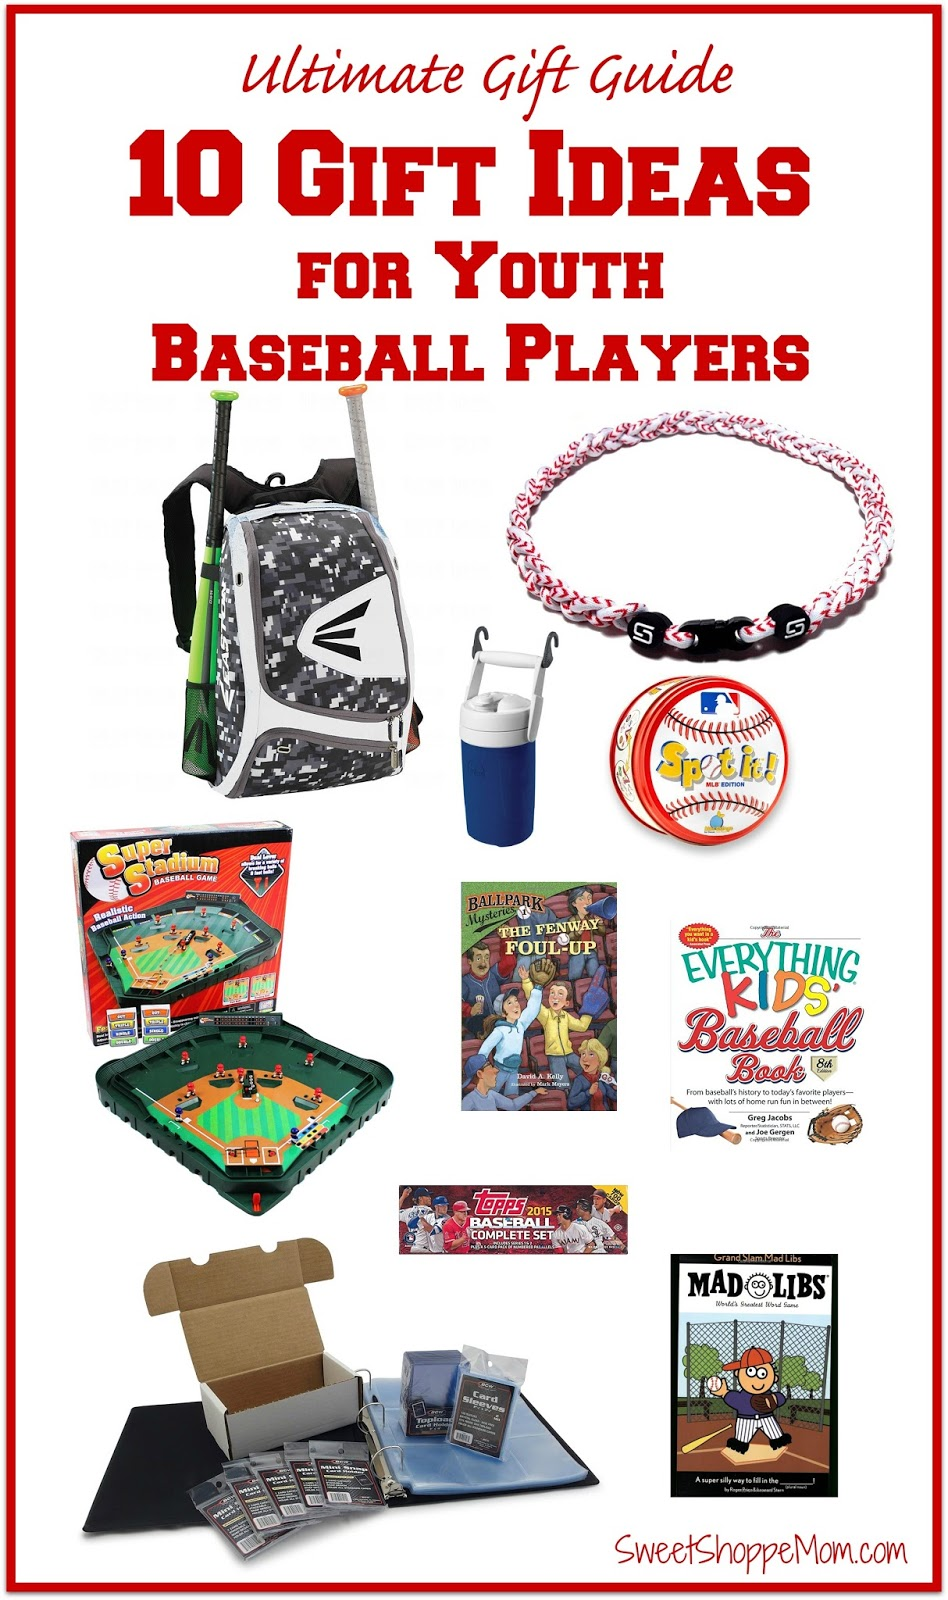 The Ultimate Gift Guide - 10 Gift Ideas for Youth Baseball Players ...